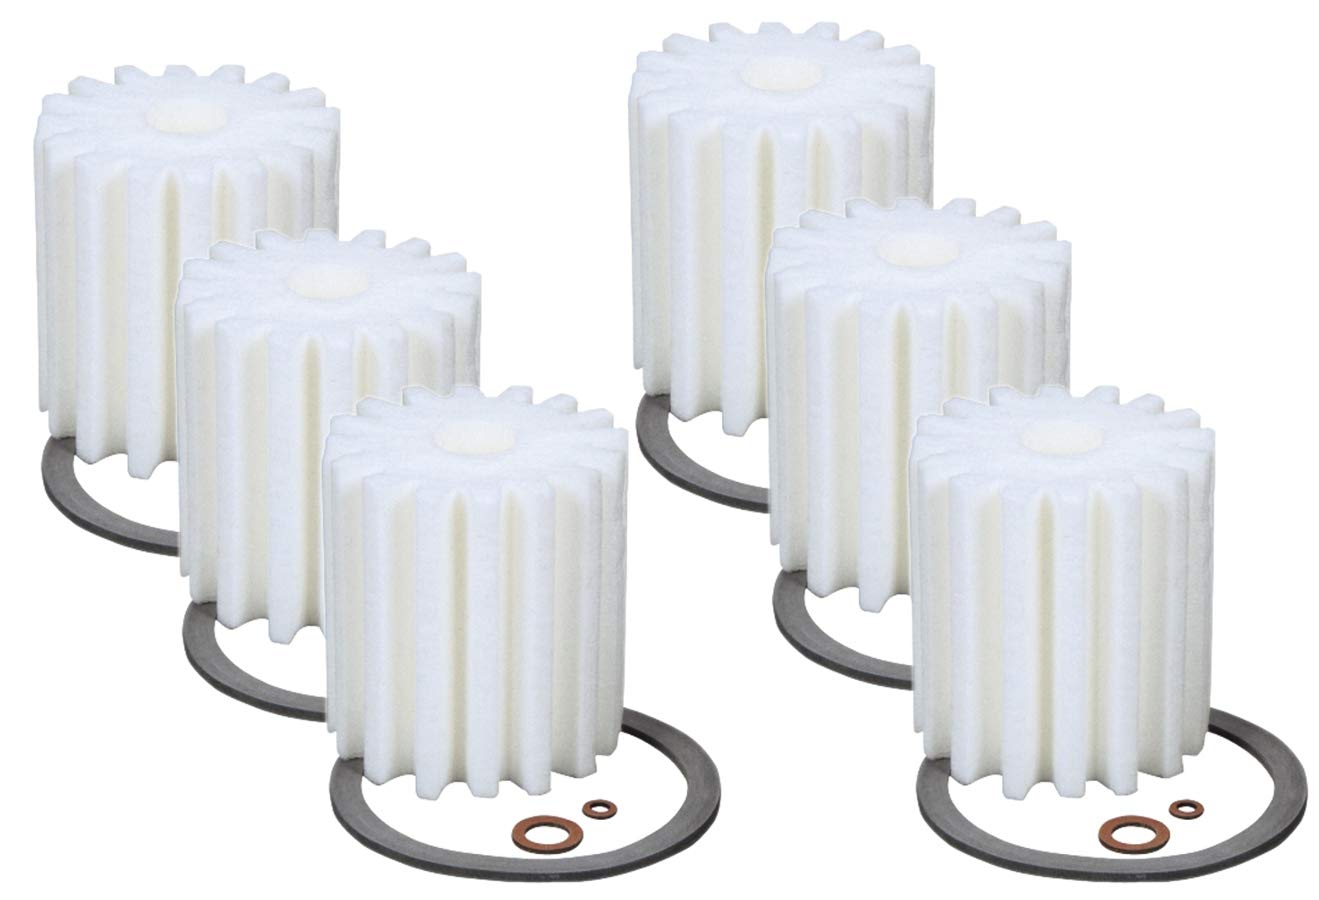 6 (Six) RF-1 Micron Rated Fuel Oil Filters Canister w/Gaskets Fit 1A-25A 77B Eddington S-254 Sears 8055 Mitco 264 AutoFlo F-300